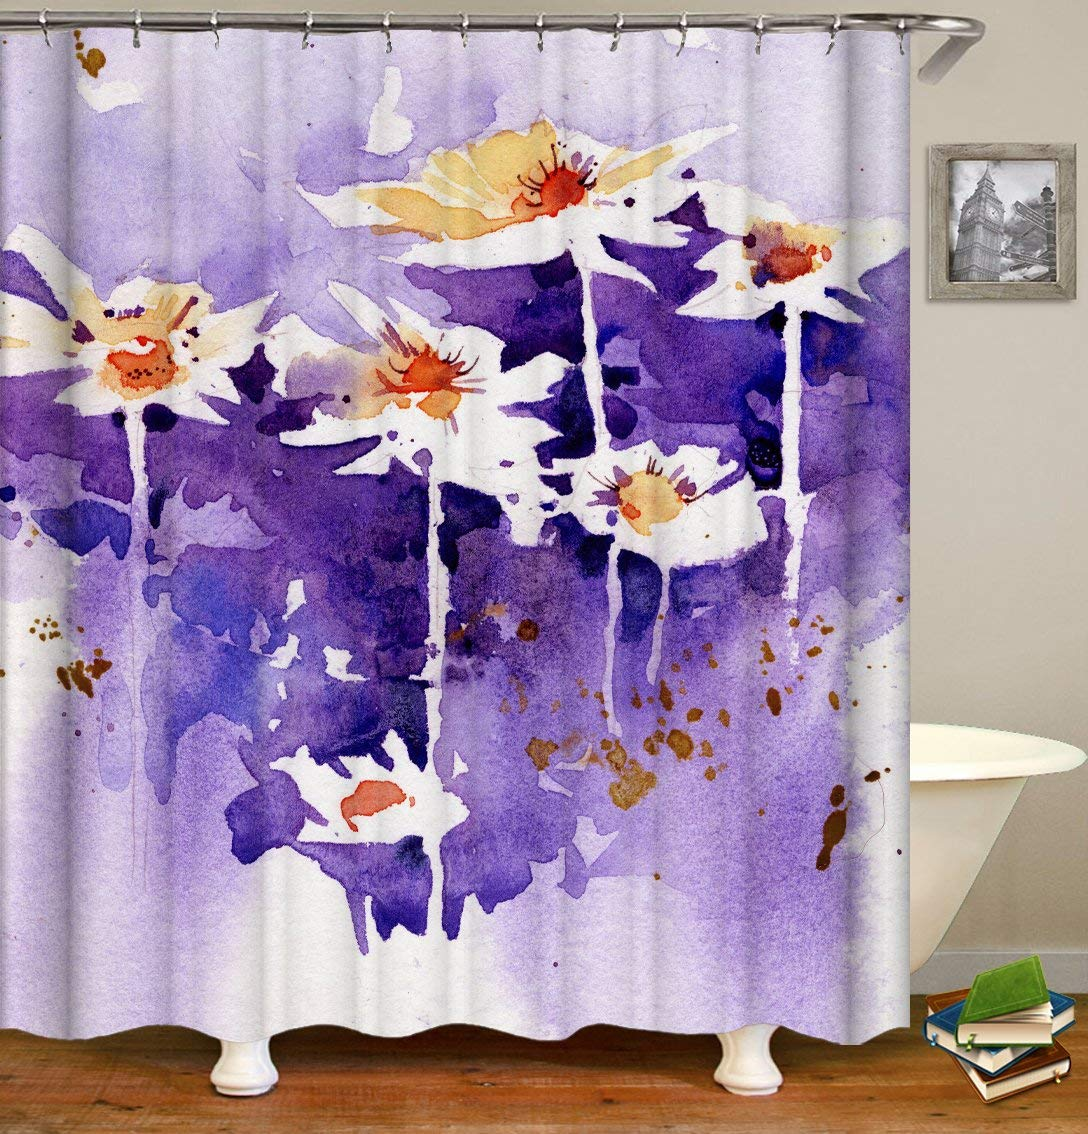 LIVILAN Watercolor Shower Curtain Set, Abstract Flowers Print Bath Curtain,Thick Polyester Fabric,Waterproof Machine Washable, 72 x 72 inch, Light Purple